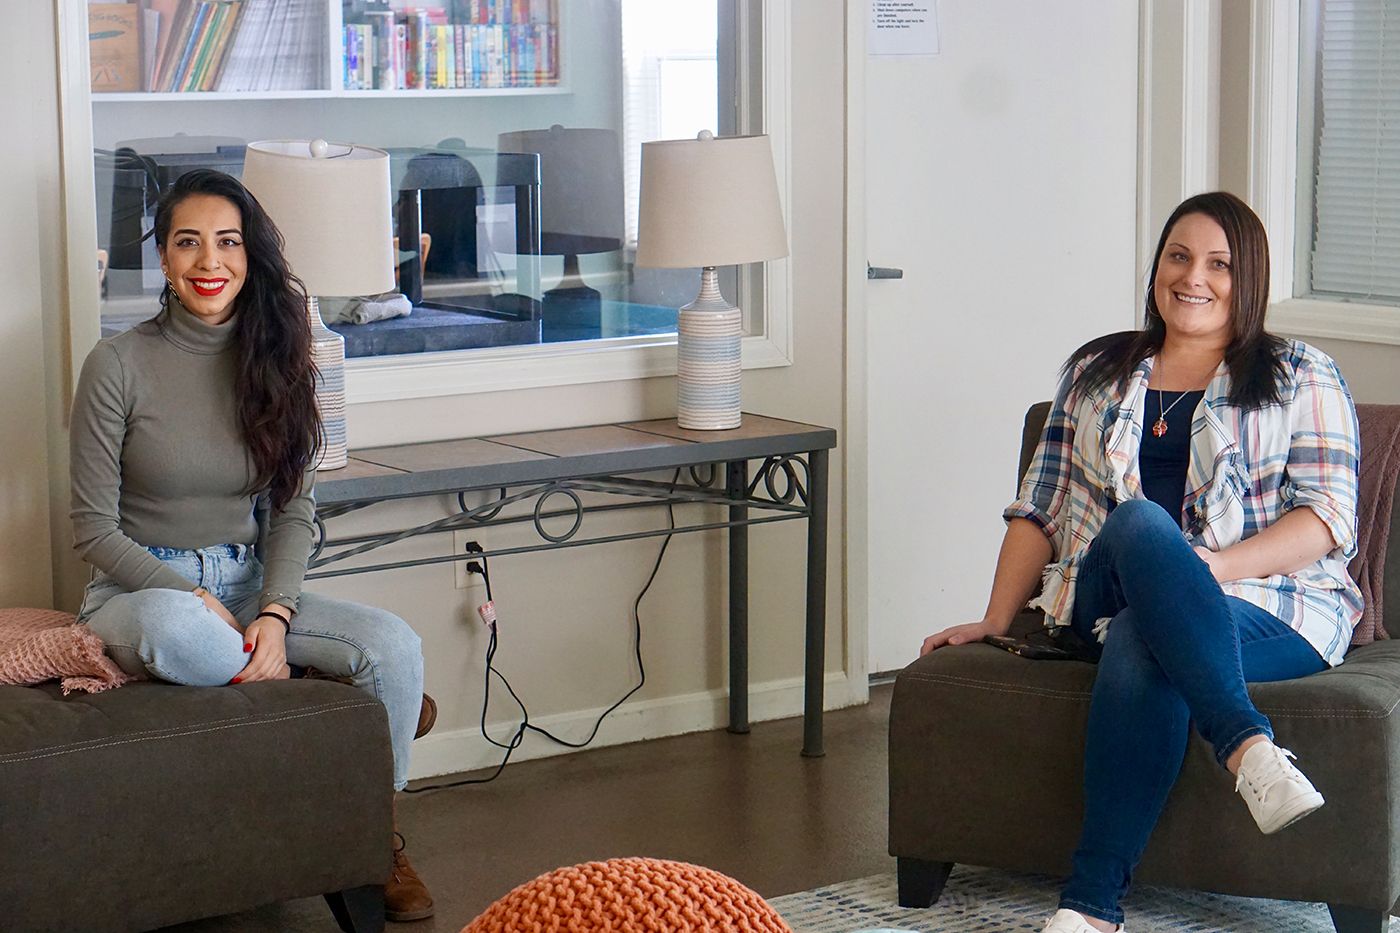 (L–R) Family Support Center Executive Director Jocelyn De La Rosa and LifeStart Program Director Heidi Lund. At the Family Support Center's LifeStart Village, single-parent families can move from homelessness into a nurturing community.